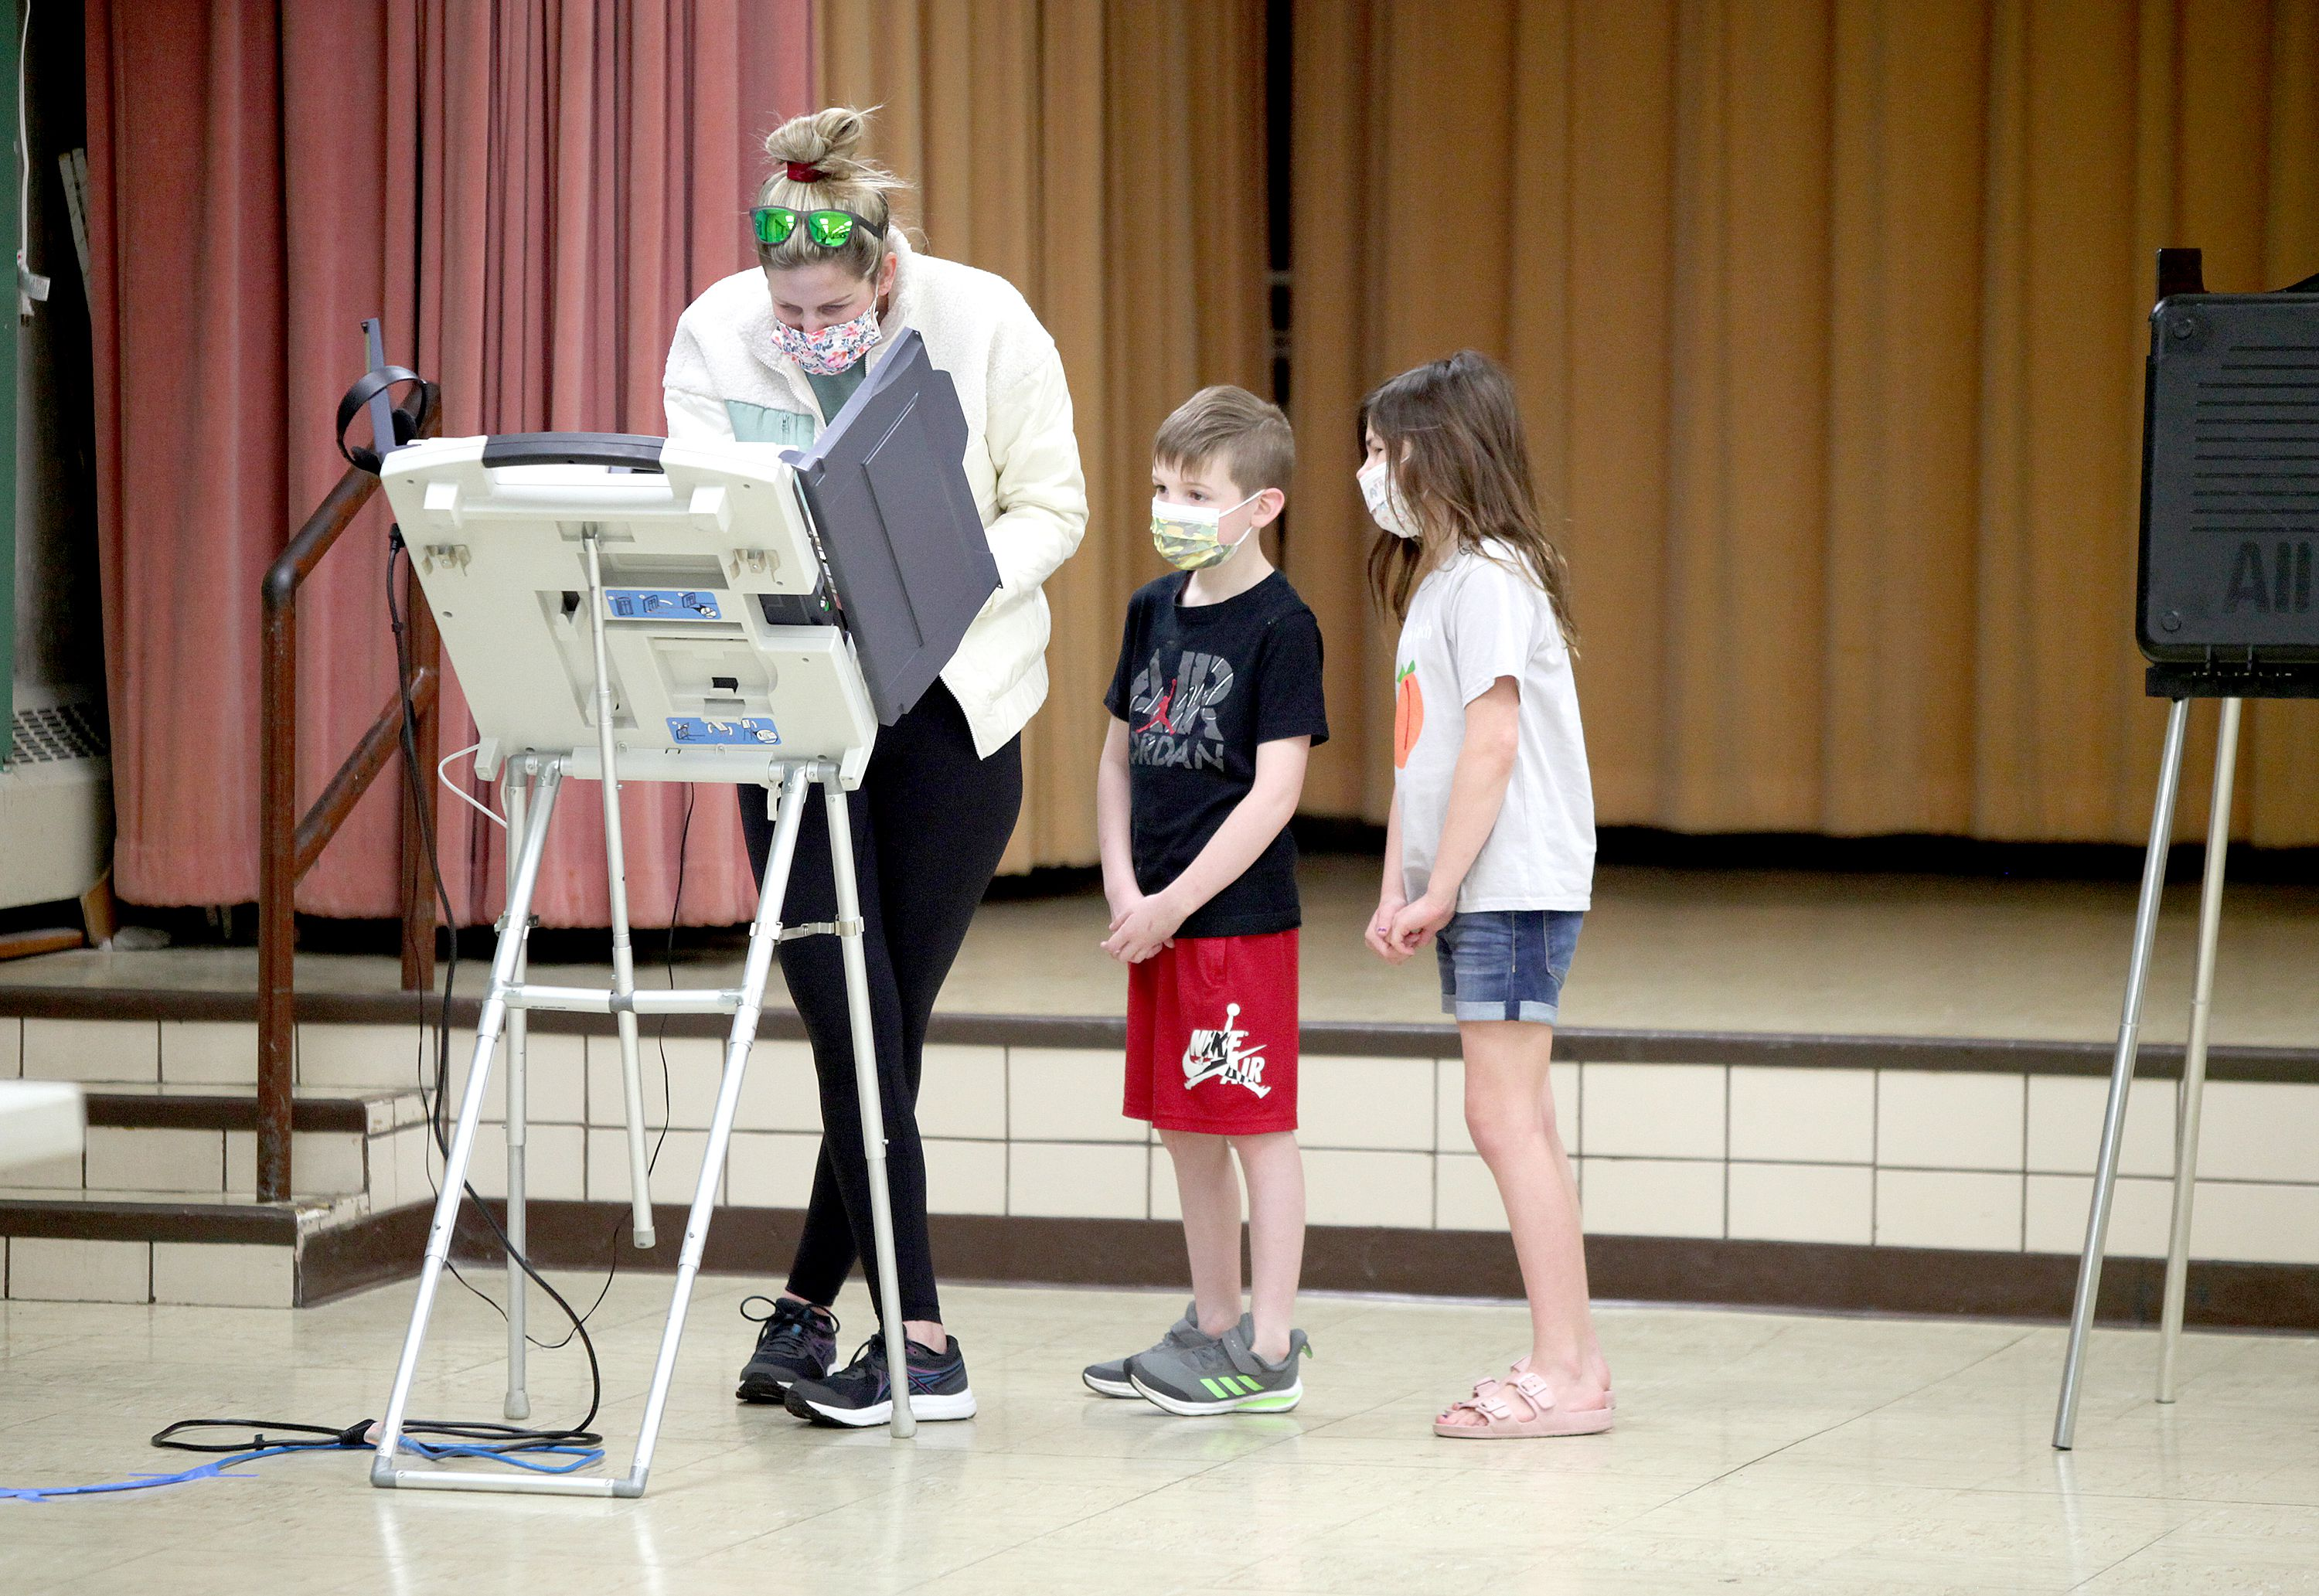 Downers Grove resident Ilana Roth votes as her children, Trey, 8, and Reese, 10, look on at the Downers Grove Village Hall on Tuesday, April 6, 2021.